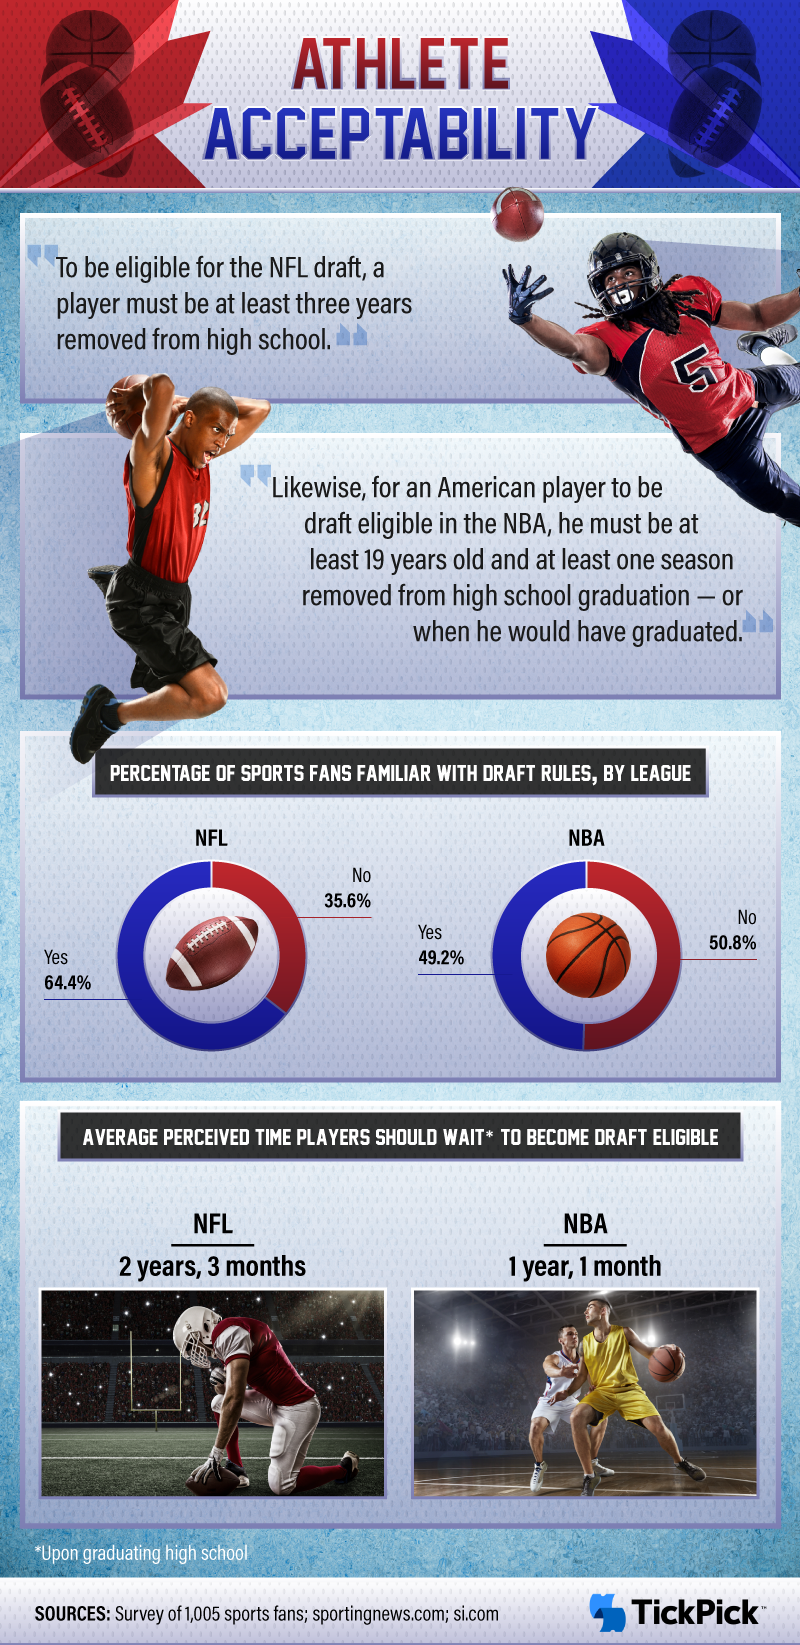 Overview of the NFL and NBA draft rules.